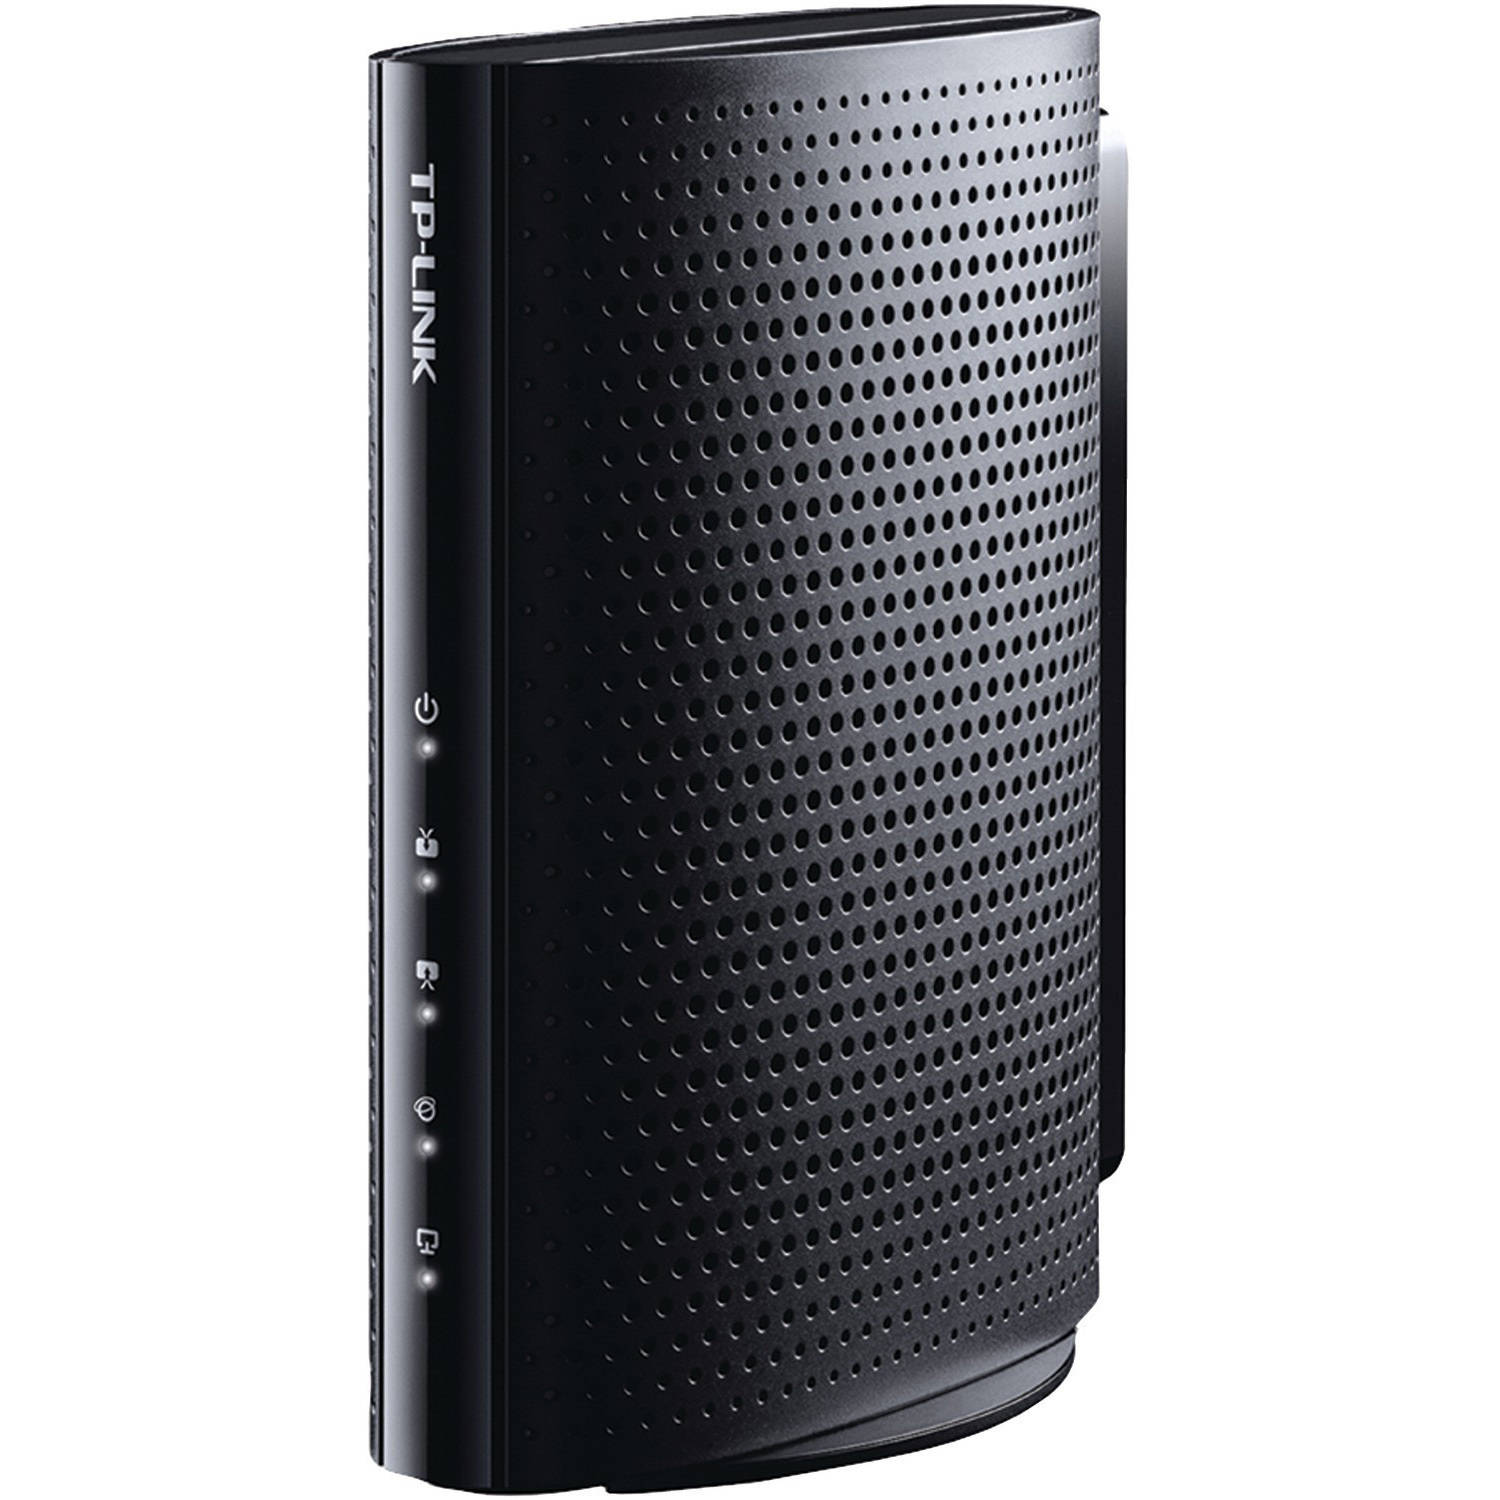 TP-LINK TC-7620 DOCSIS 3.0 High-Performance Cable Modem